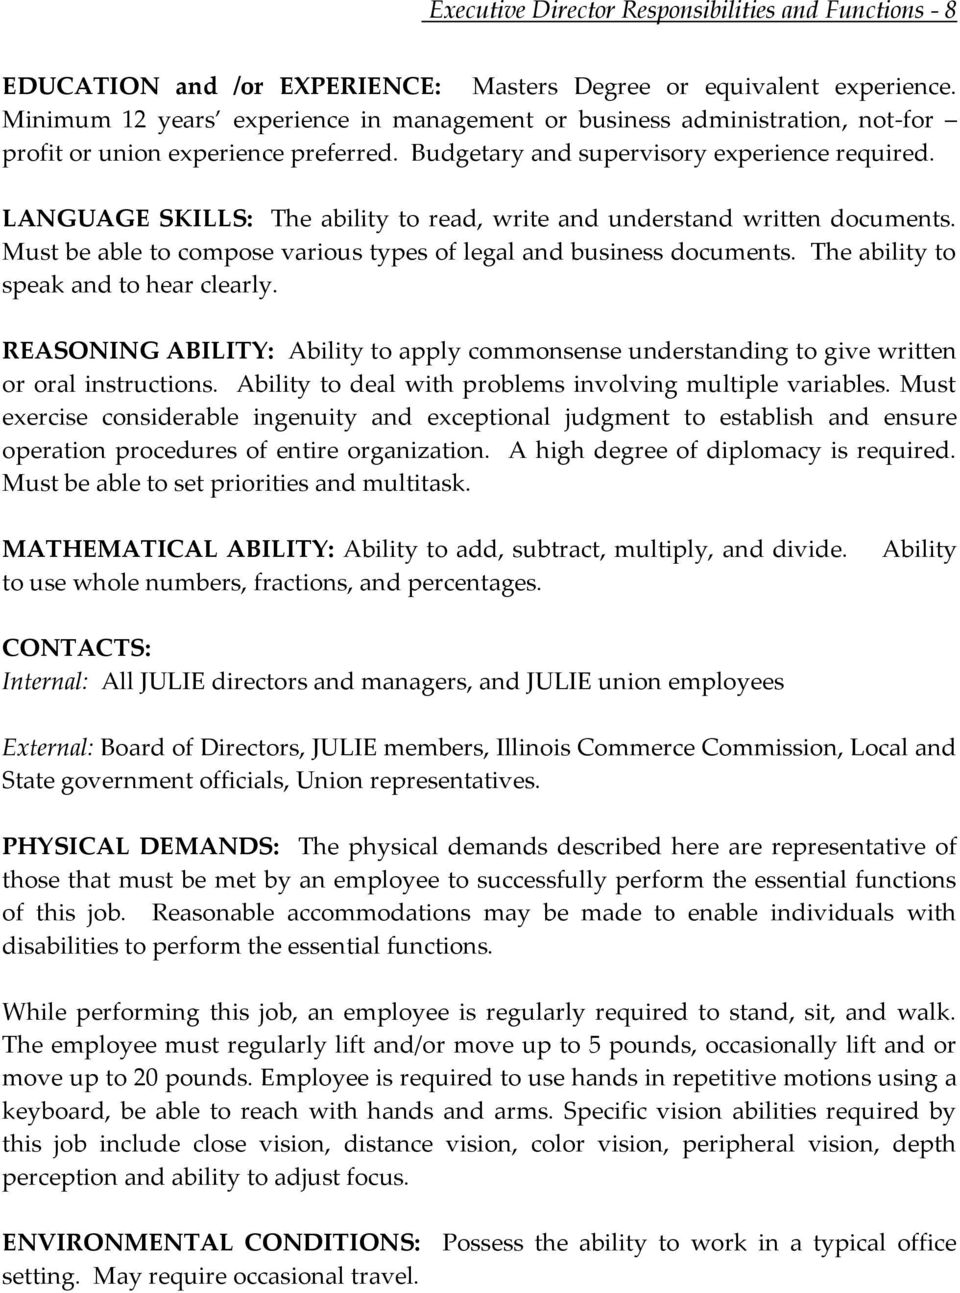 LANGUAGE SKILLS: The ability to read, write and understand written documents. Must be able to compose various types of legal and business documents. The ability to speak and to hear clearly.